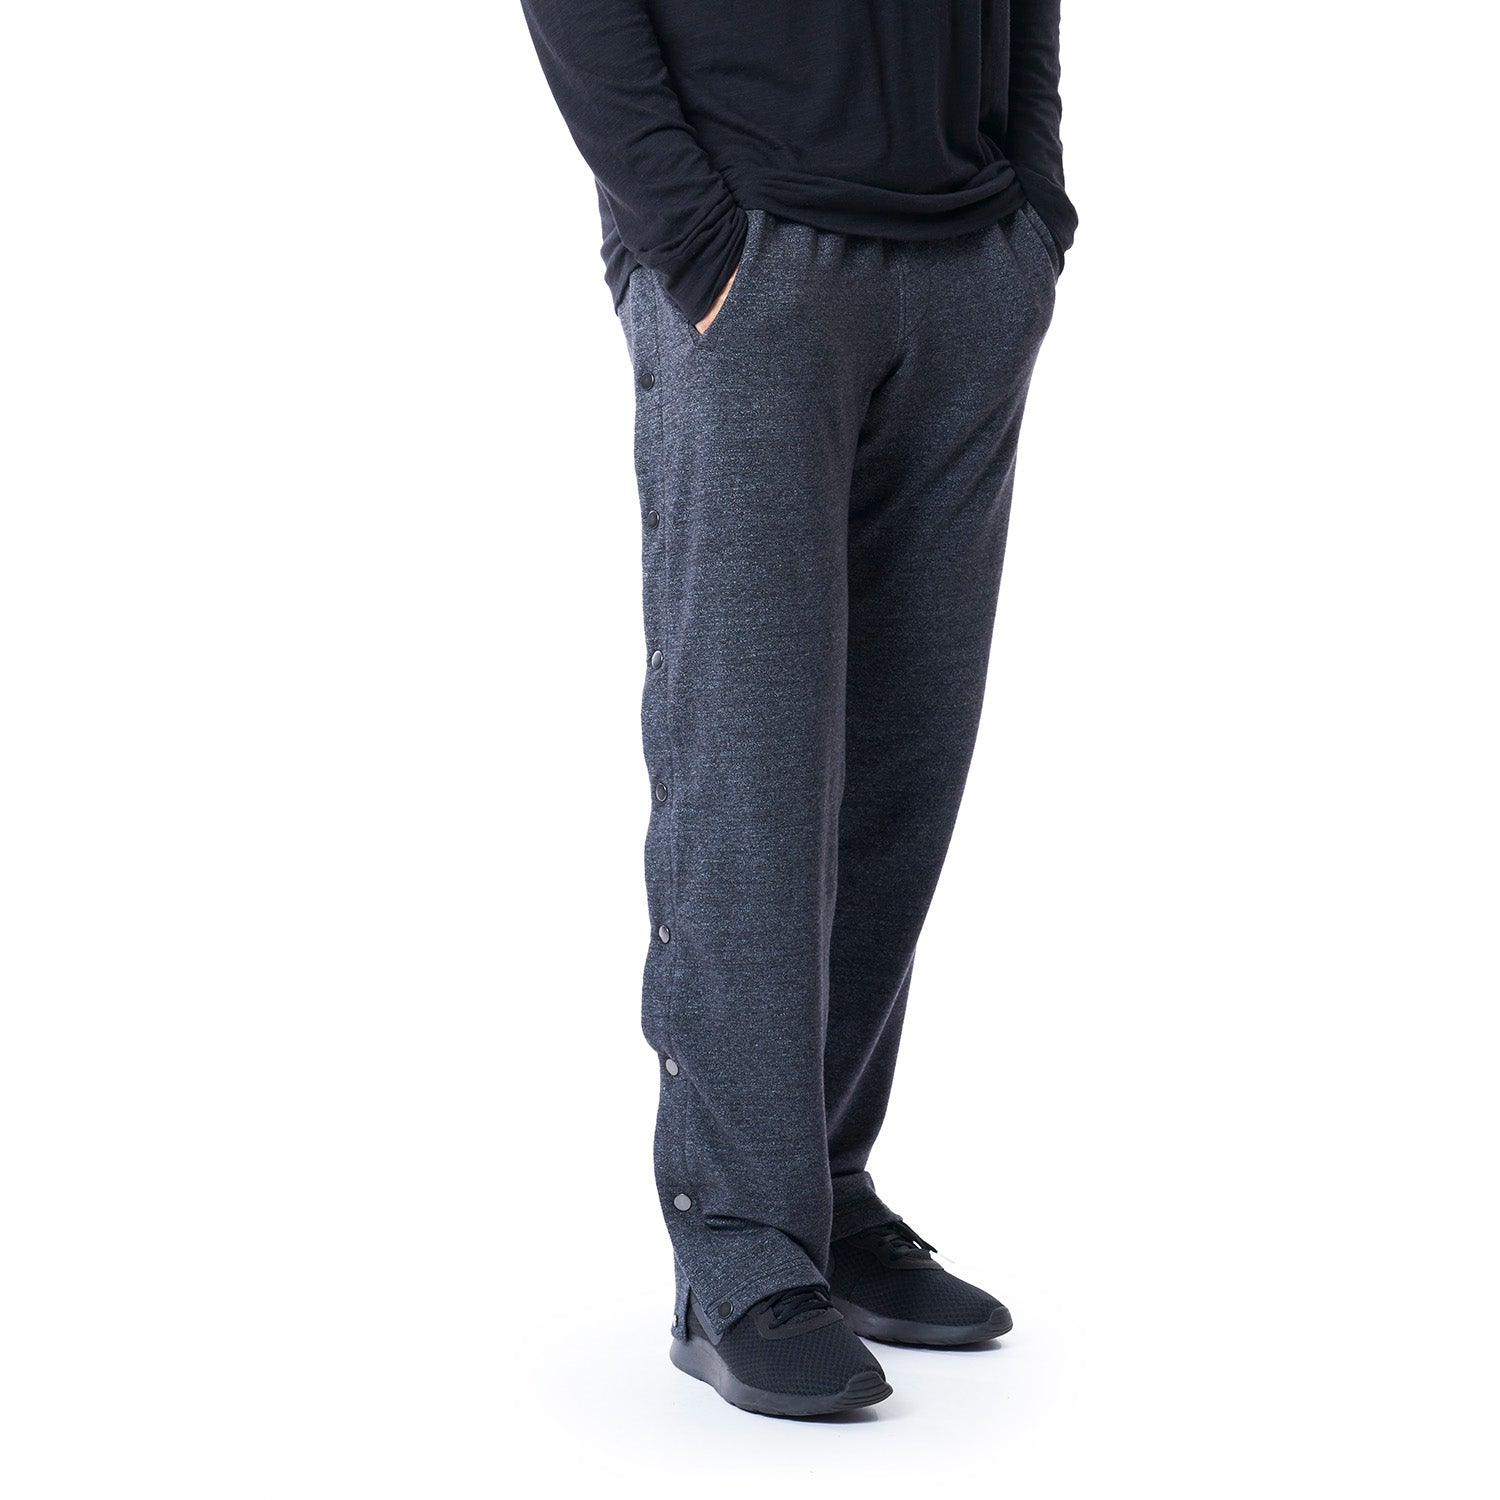 S.A.S. Tear-Away Pants in Heather Black - Mitchell Evan